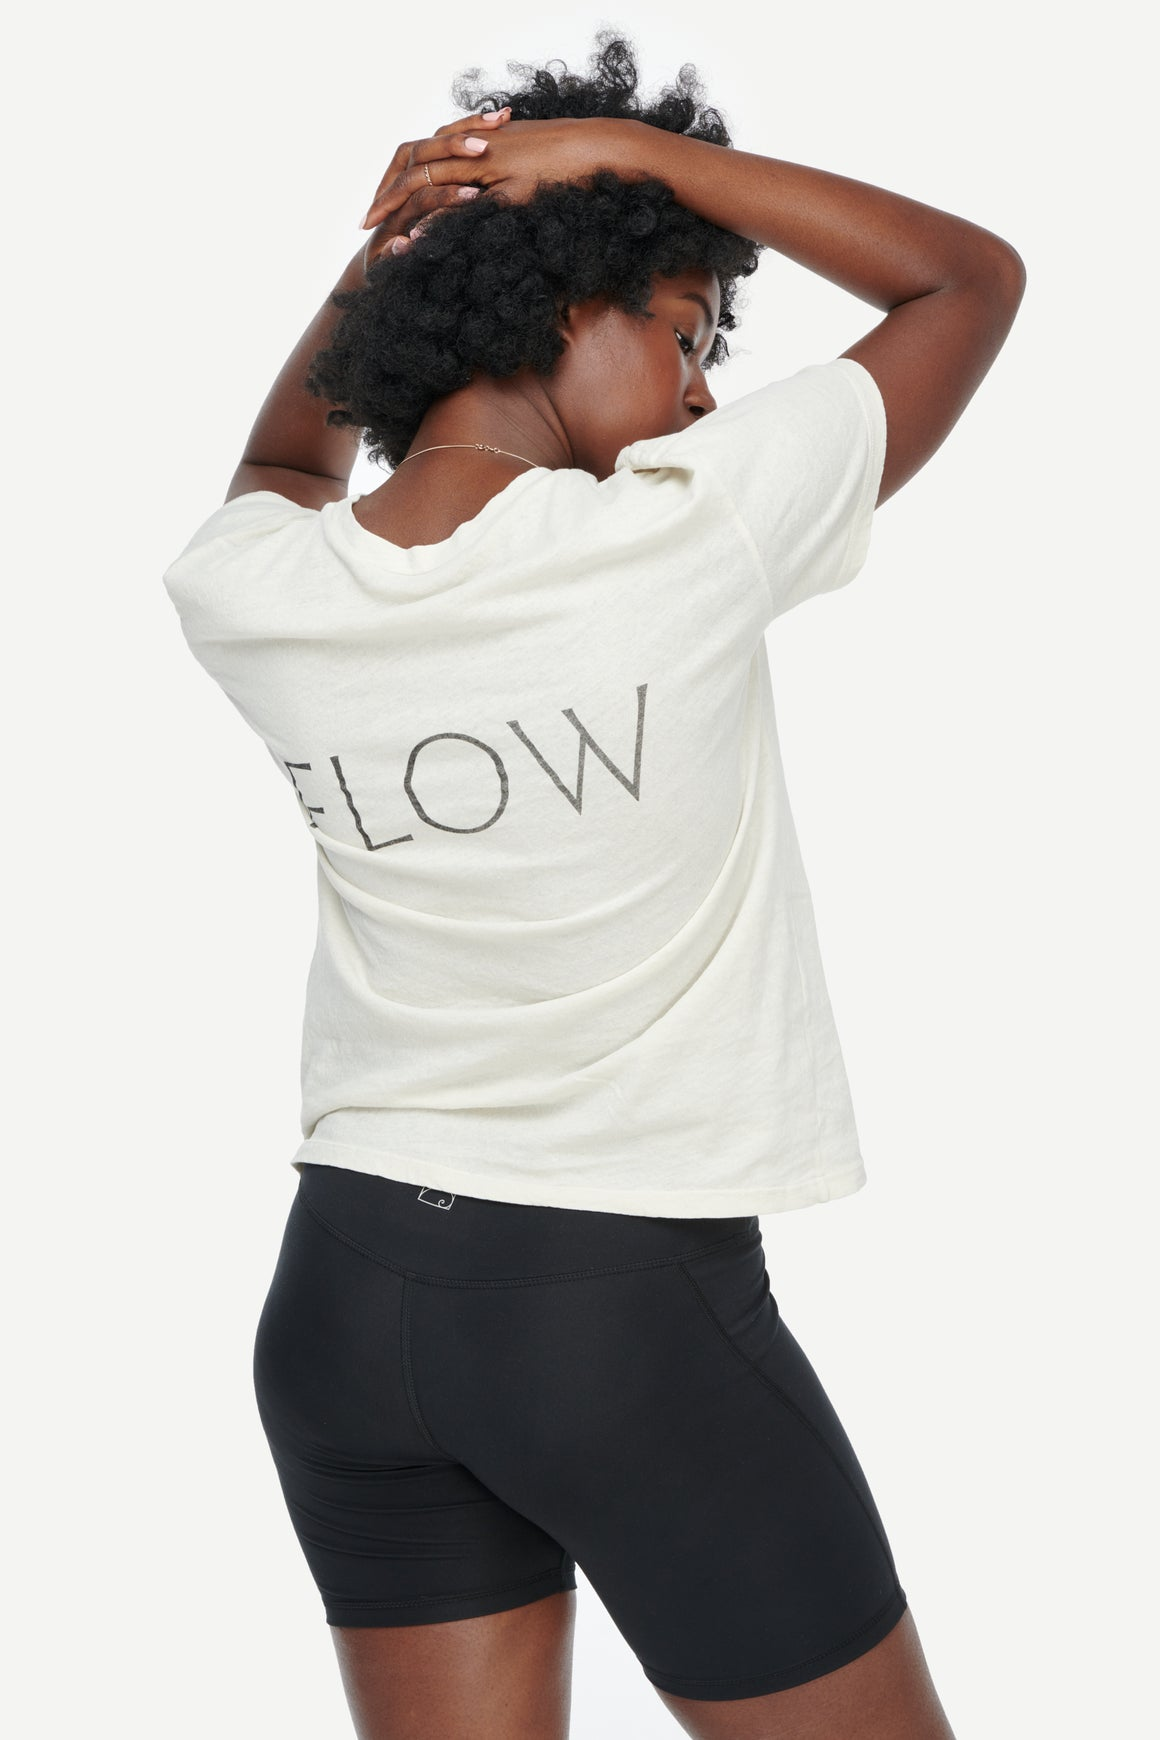 Limited Edition FLOW Vintage Tee